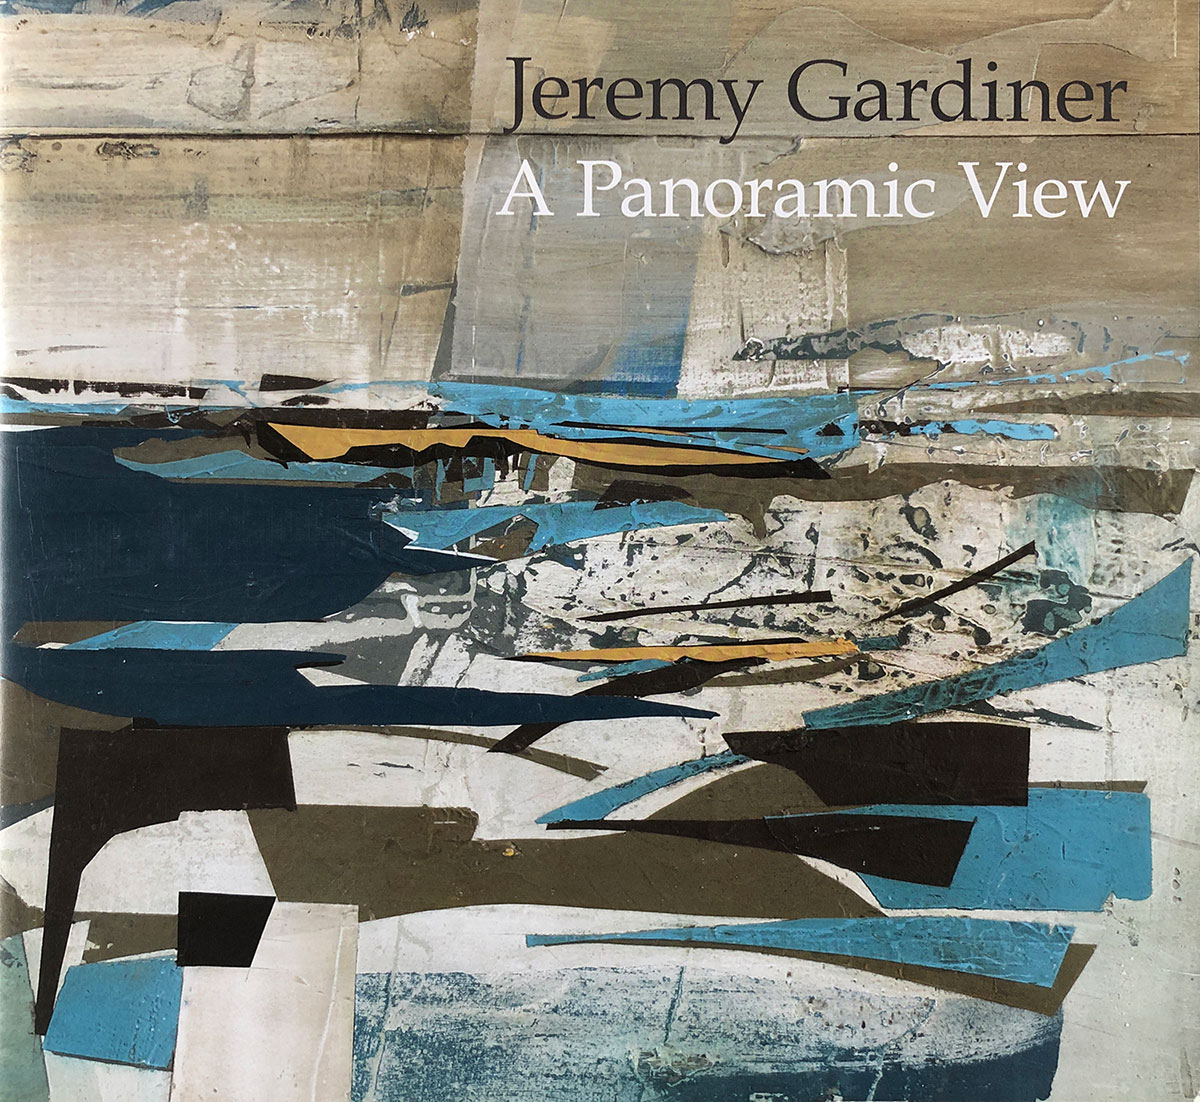 The book cover of A Panoramic View by Jeremy Gardiner